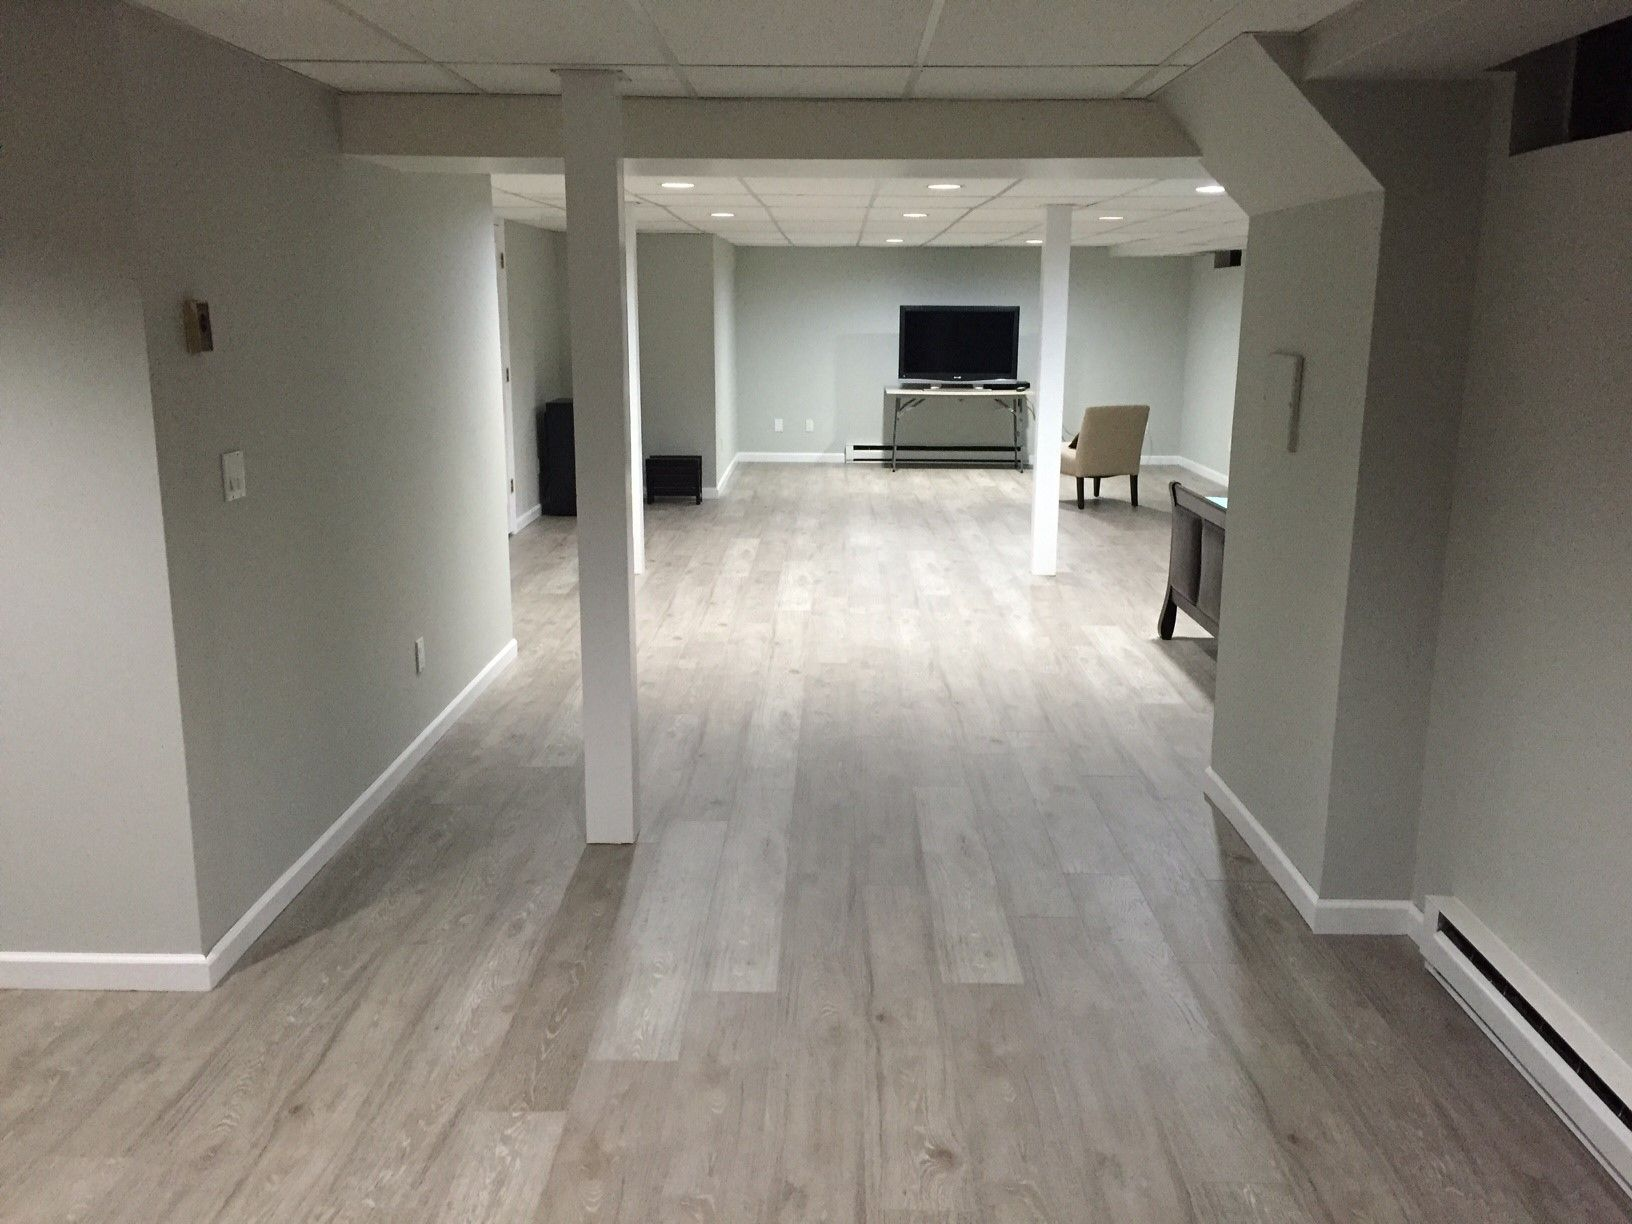 jose g upgraded his basement with kronoswiss ecru laminate flooring using express flooring. Black Bedroom Furniture Sets. Home Design Ideas